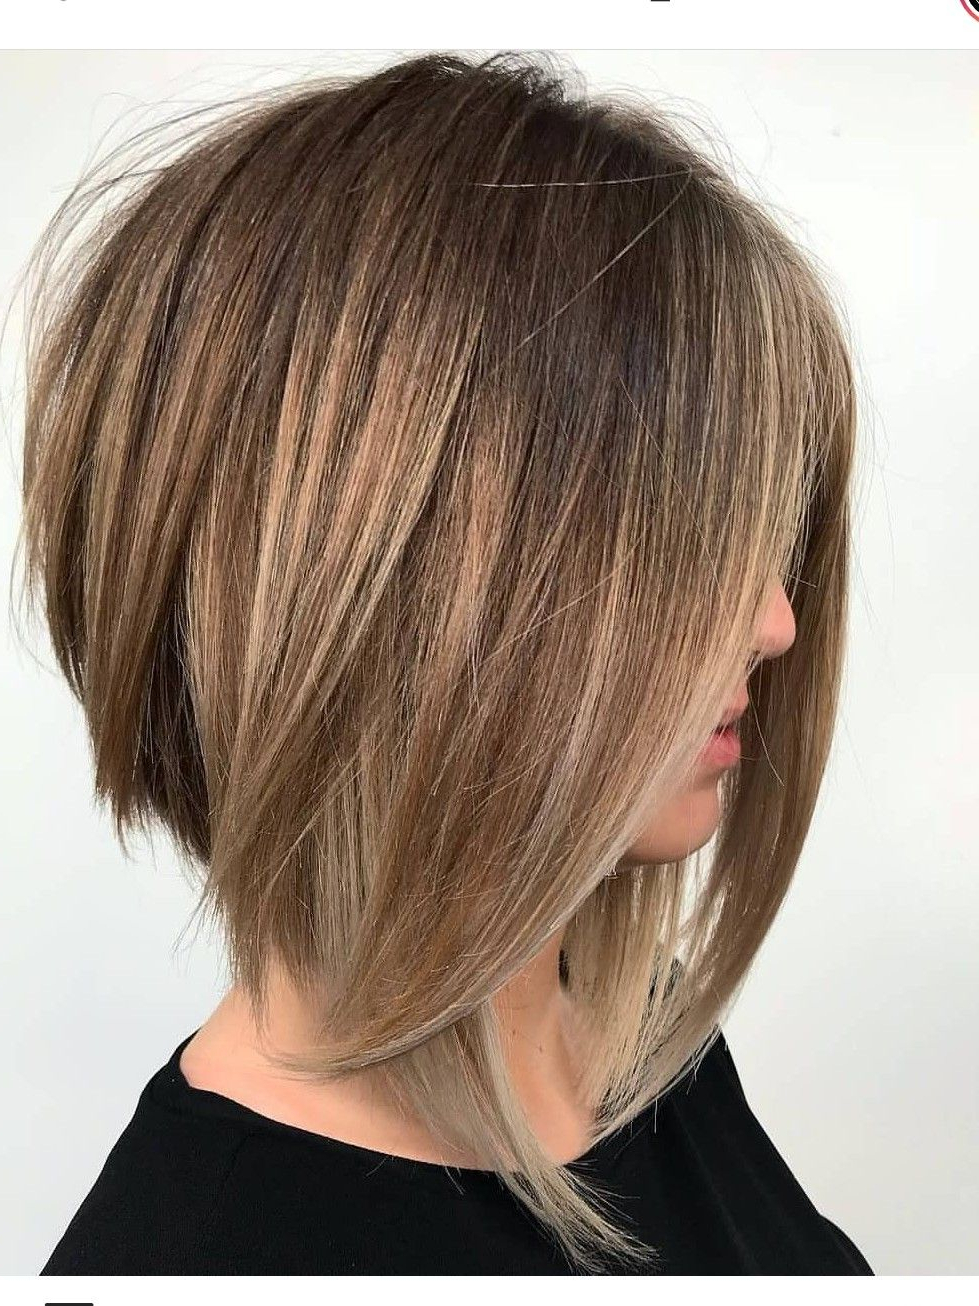 Famous Cute A Line Bob Hairstyles With Volume Towards The Ends Inside A Line Bob. (Gallery 4 of 20)